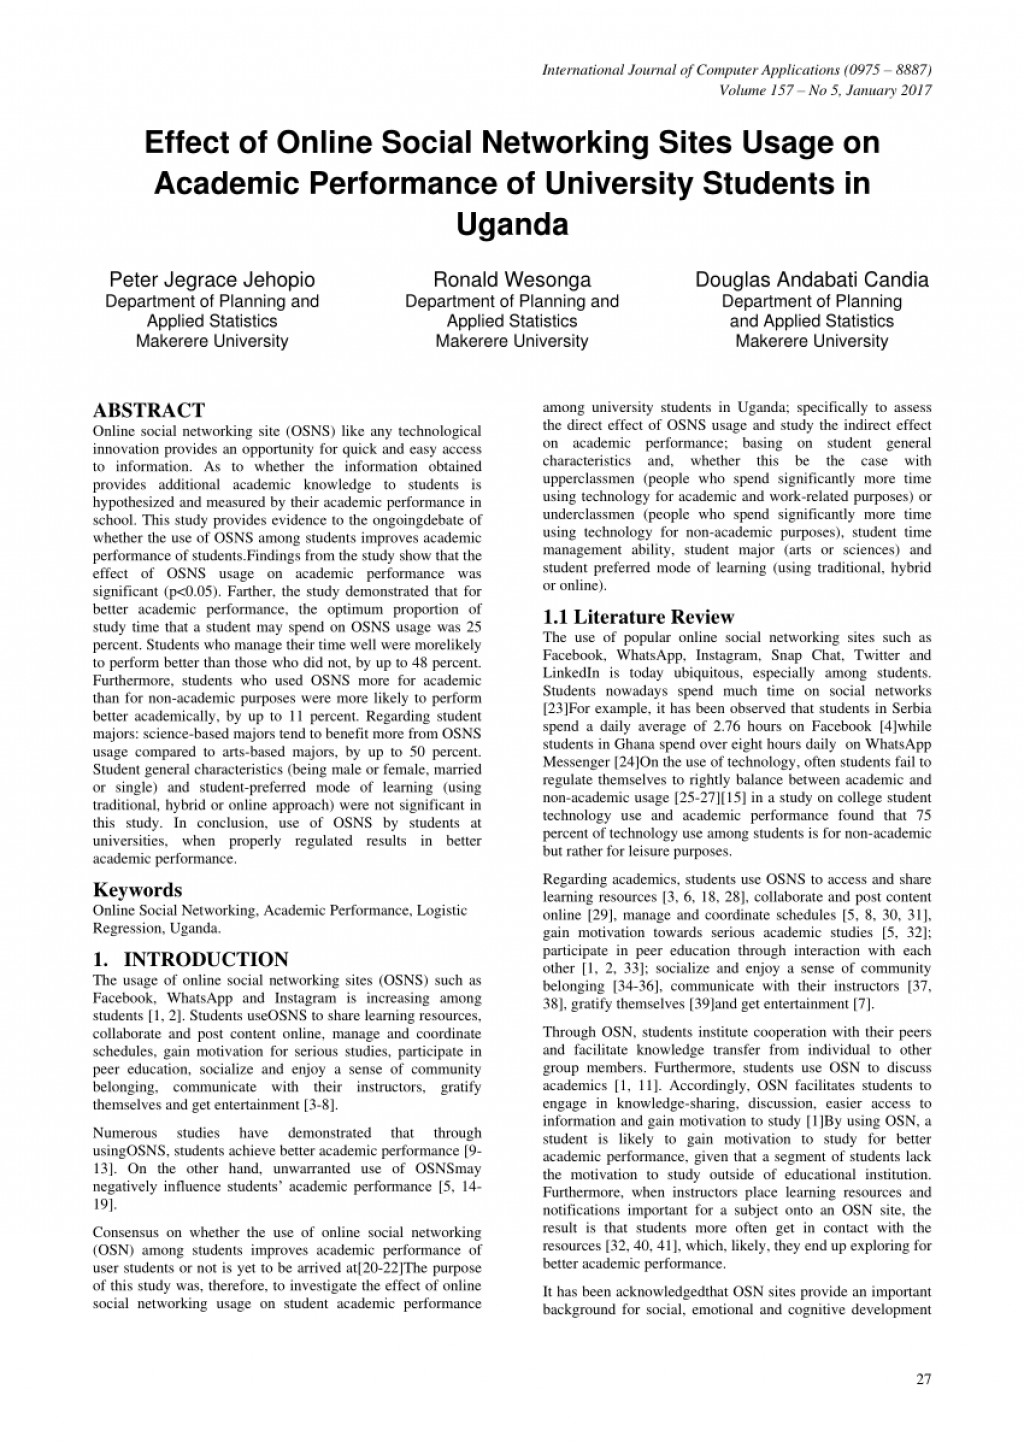 006 Conclusion For Research Paper About Social Media Awful Large